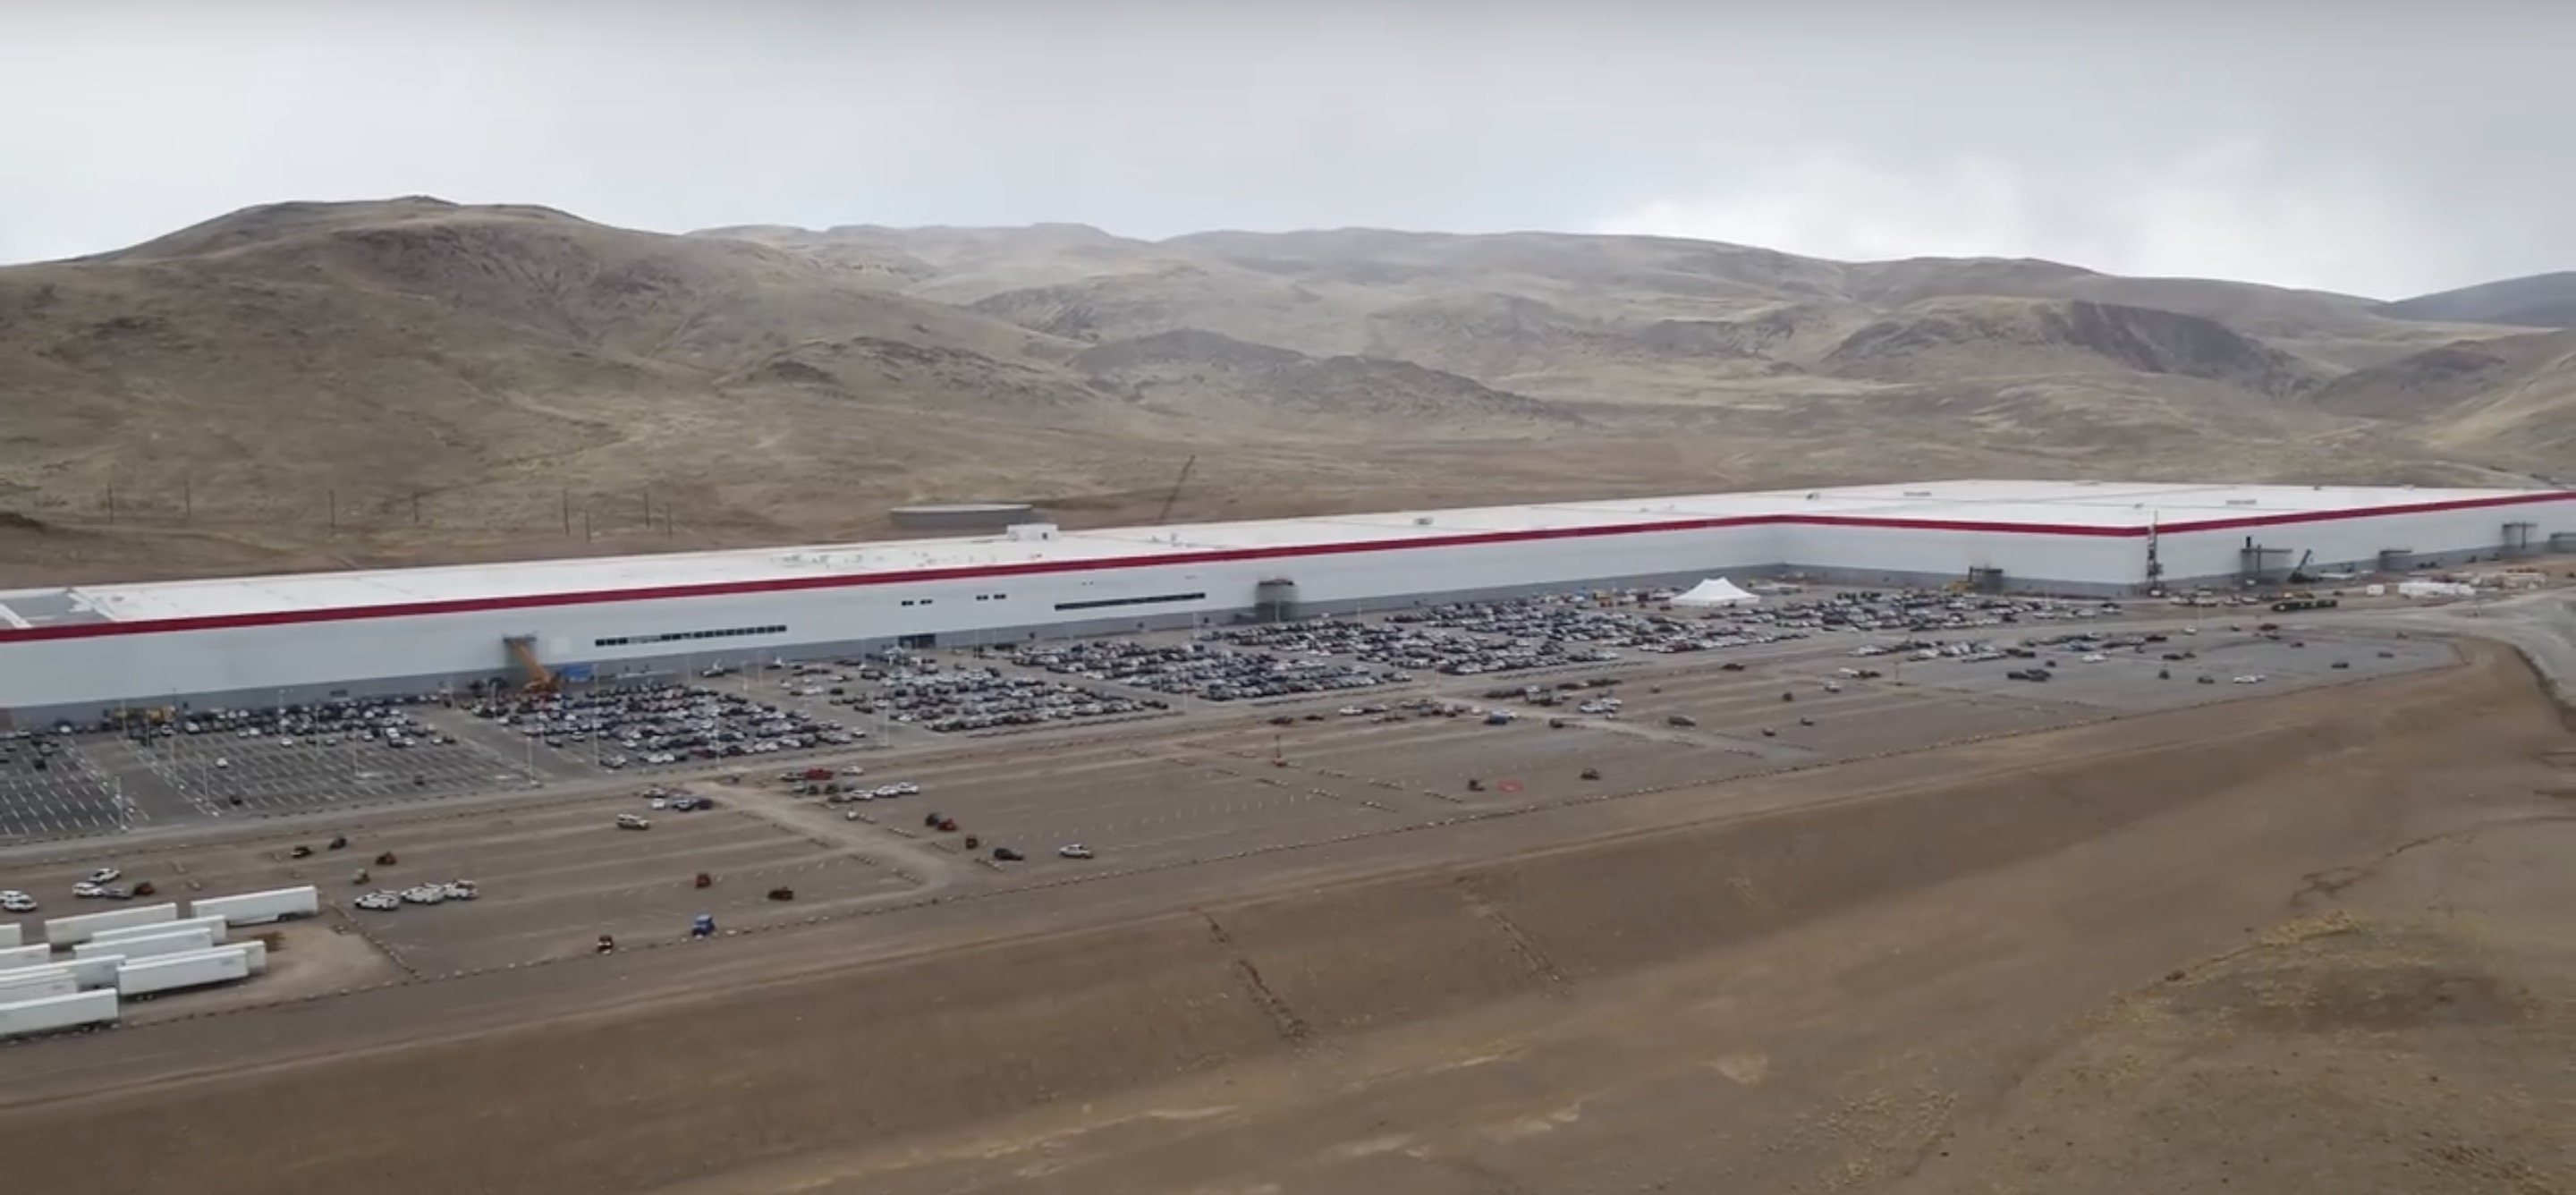 Former Tesla employee claims Gigafactory 1 is involved in drug trafficking activities